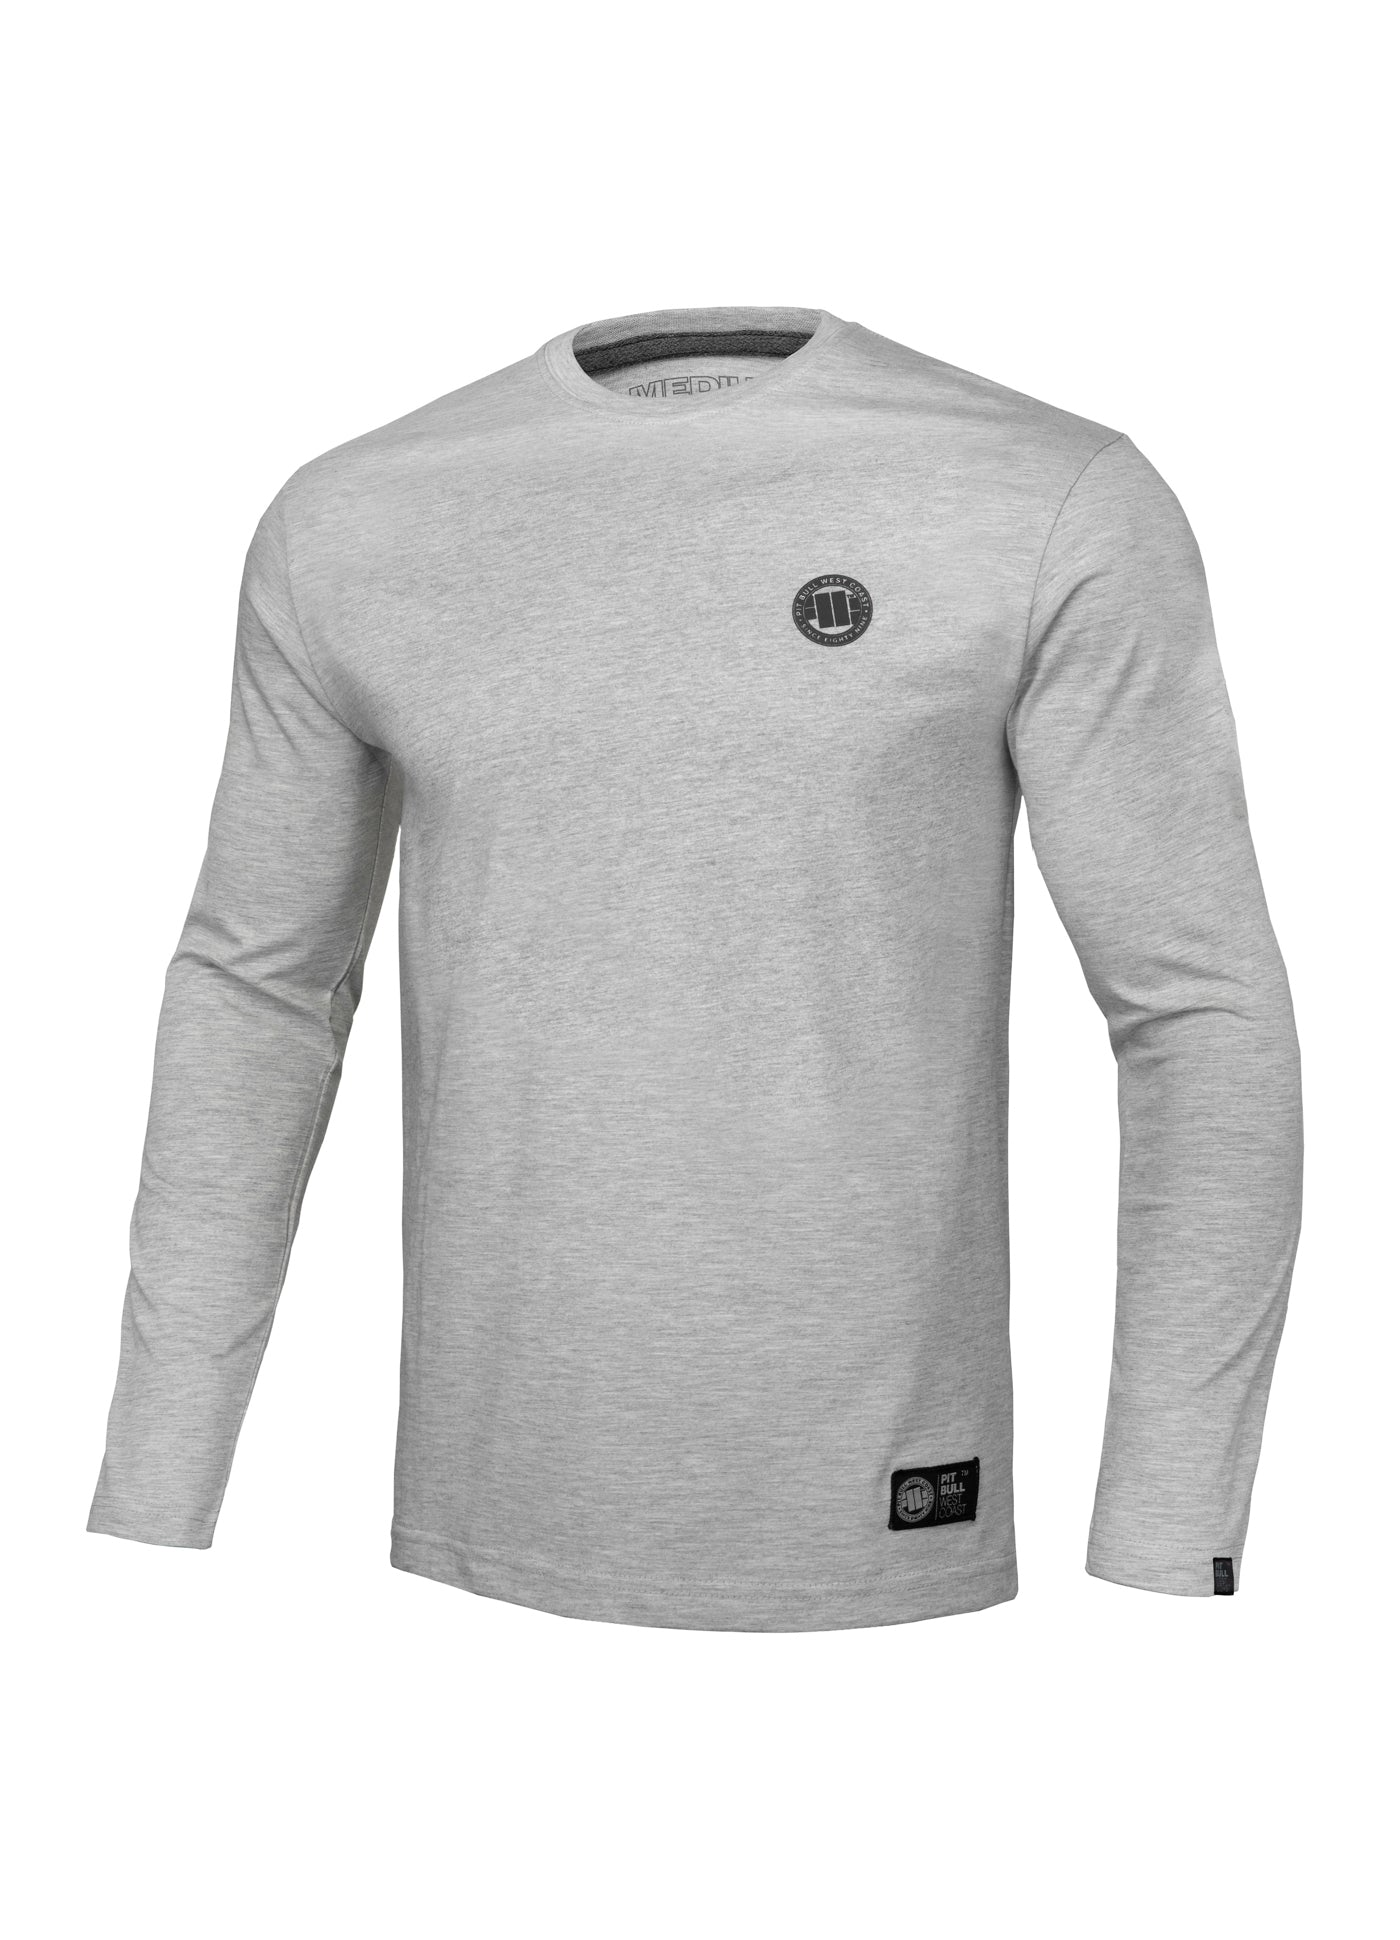 Longsleeve SMALL LOGO Grey - pitbullwestcoast